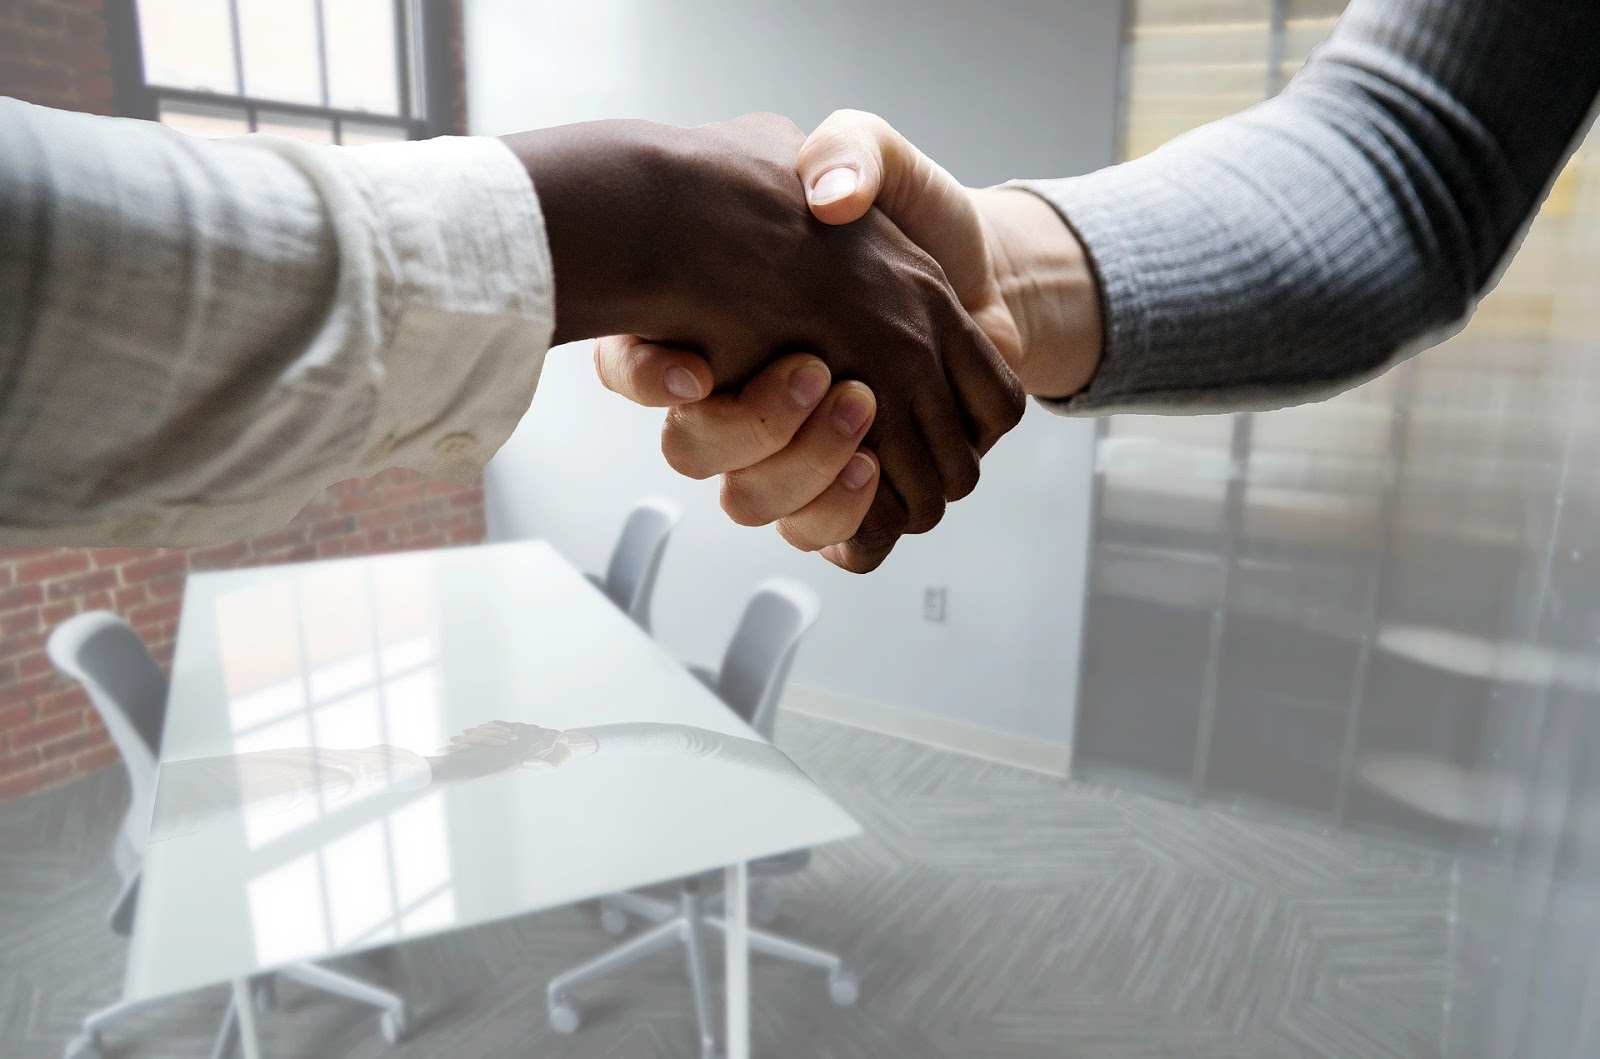 Types of interview questions: Two people shake hands